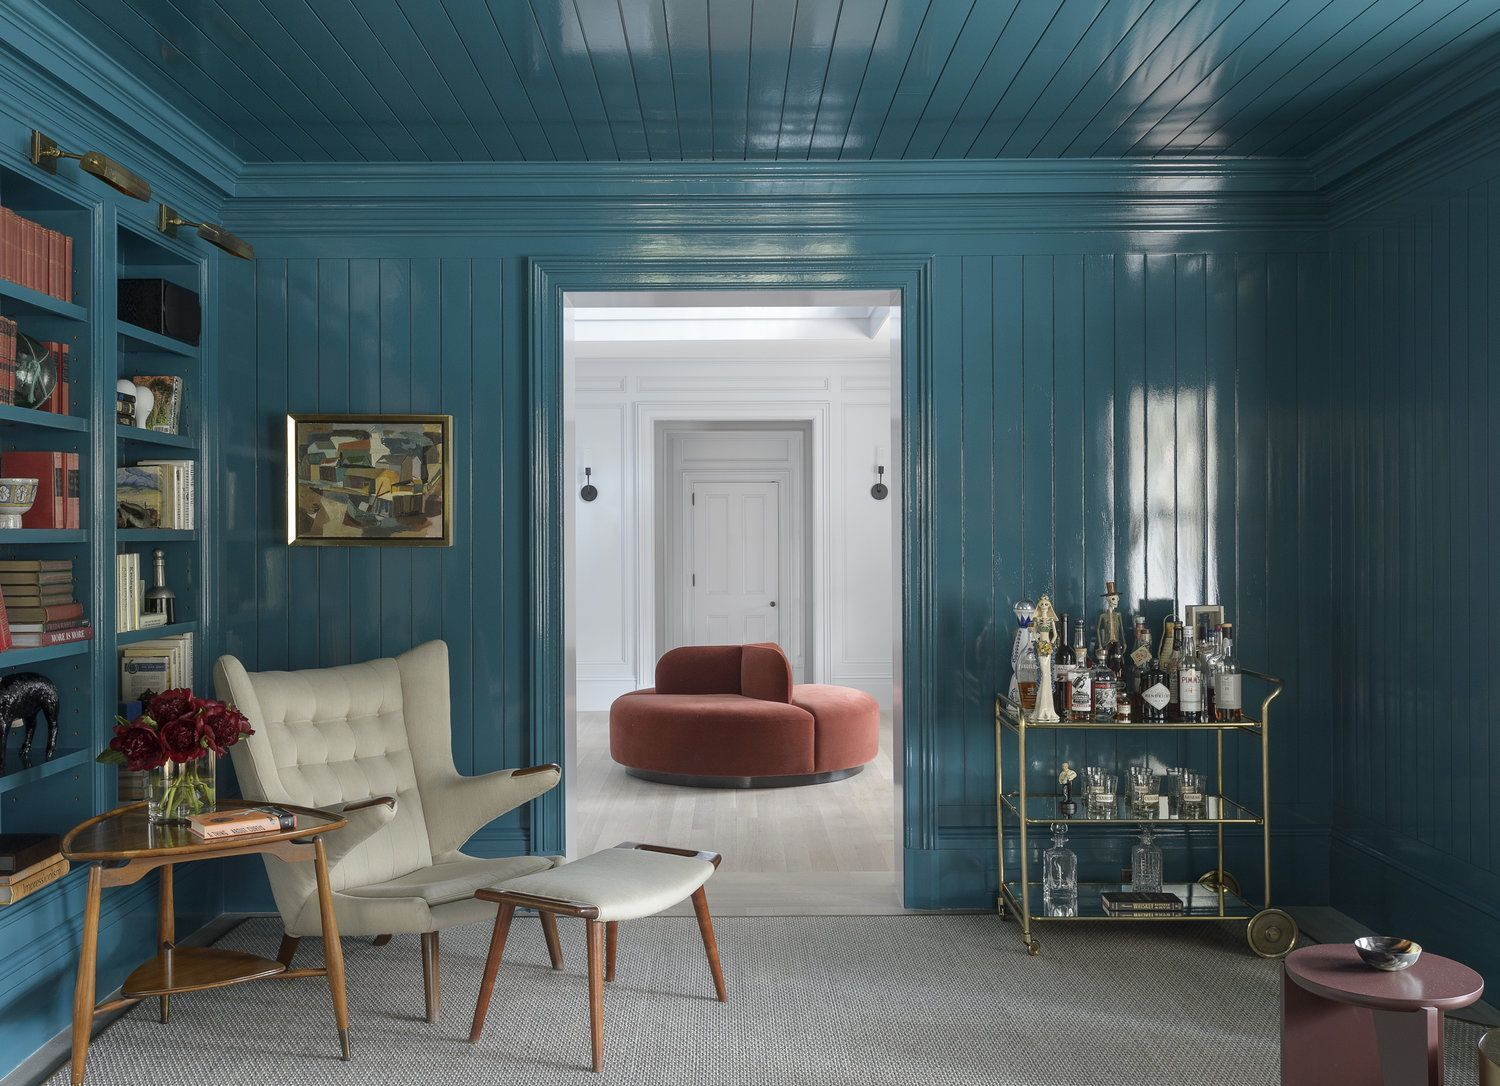 11 Wood Wall Paneling Makeover Ideas How To Update And